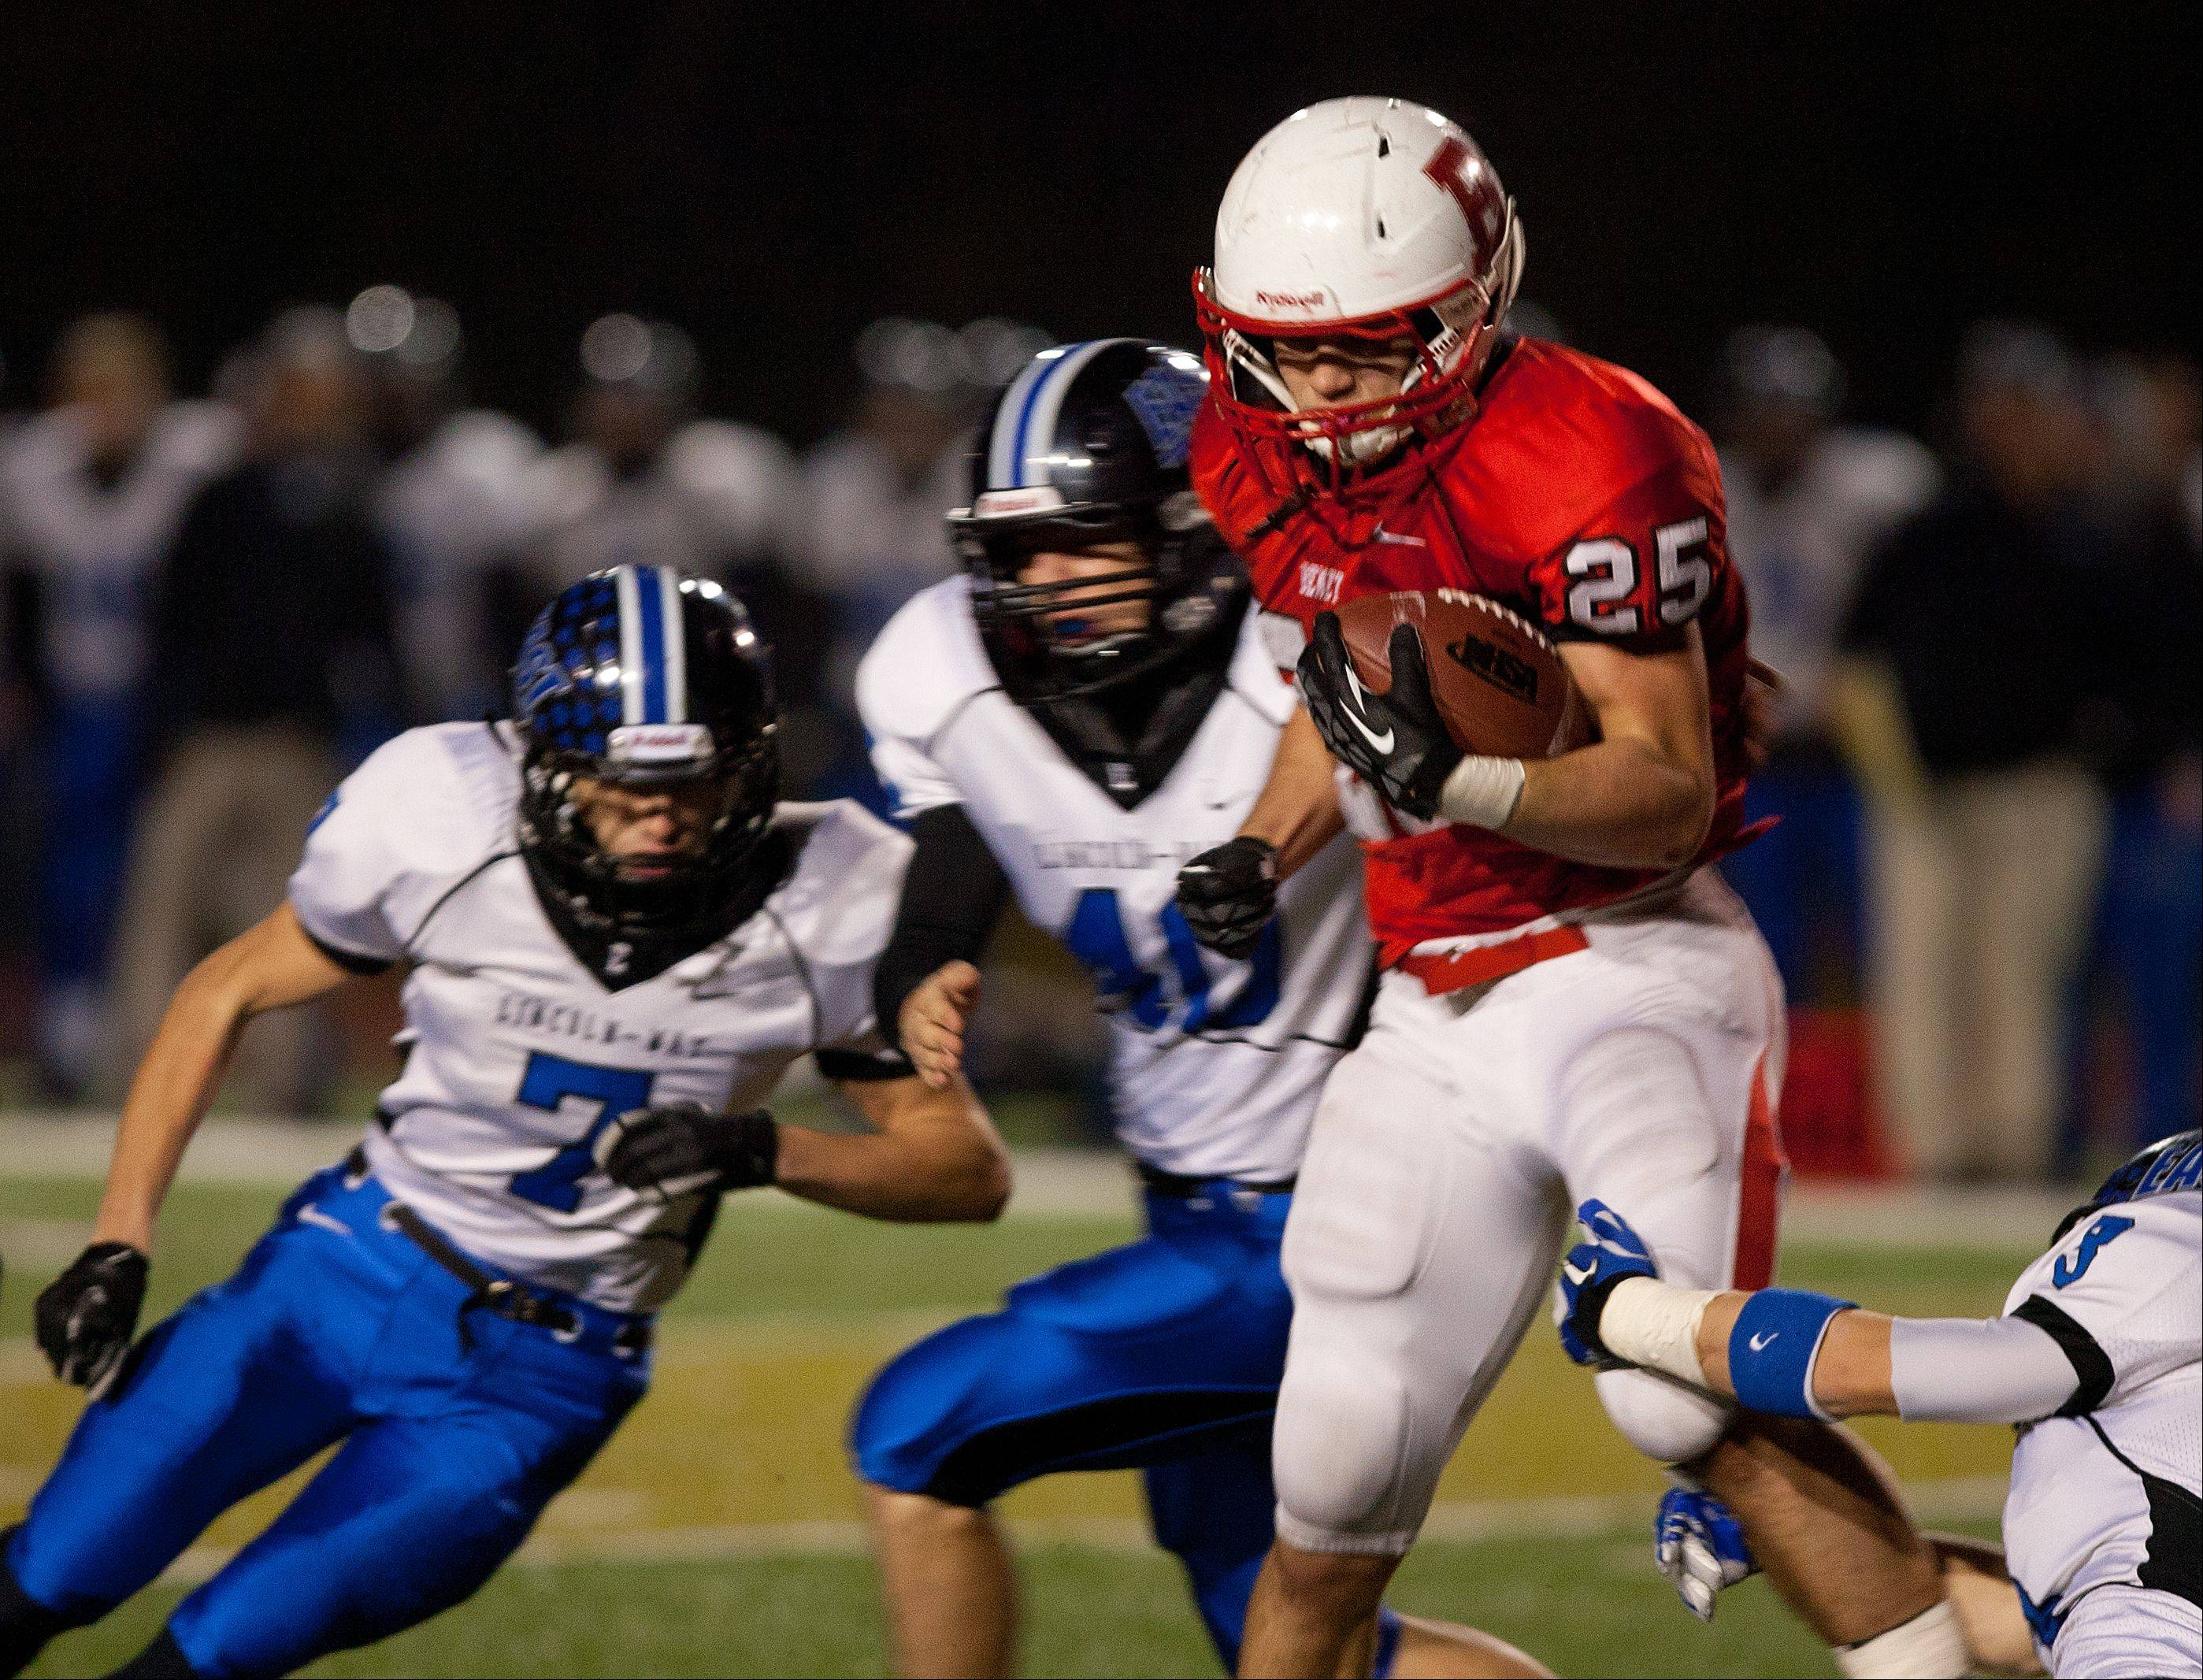 Images: Benet vs. Lincoln-Way East football